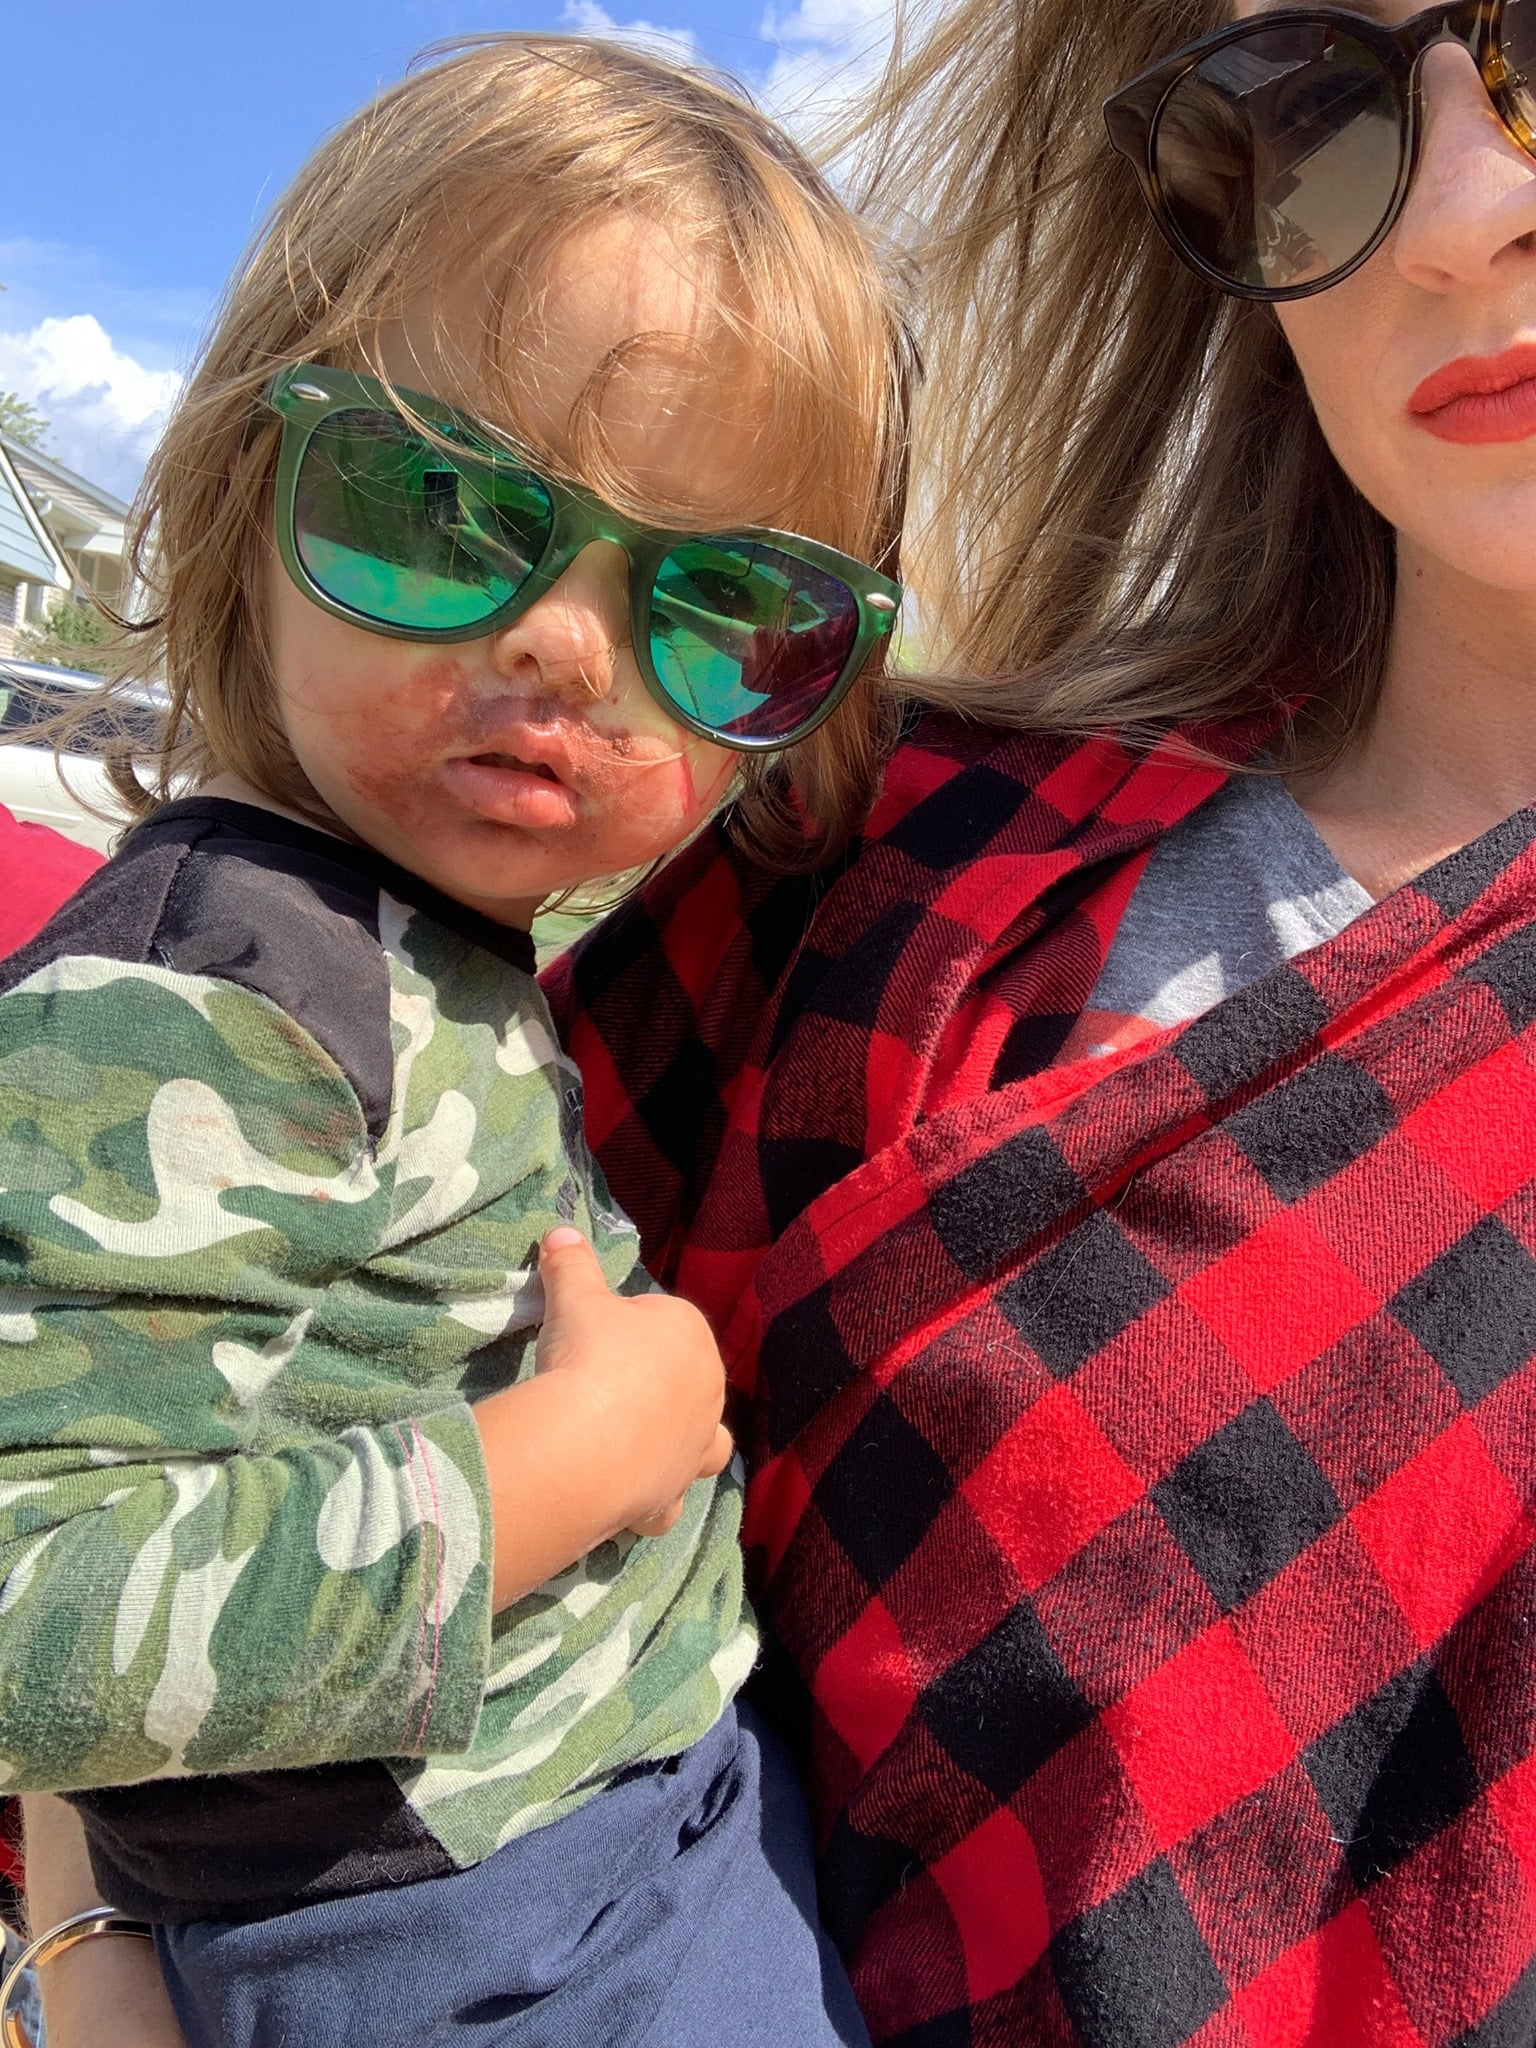 """A Little Girl Smeared Lipstick All Over Her Face as a """"Surprise"""" For Her Mom, and How Thoughtful!"""